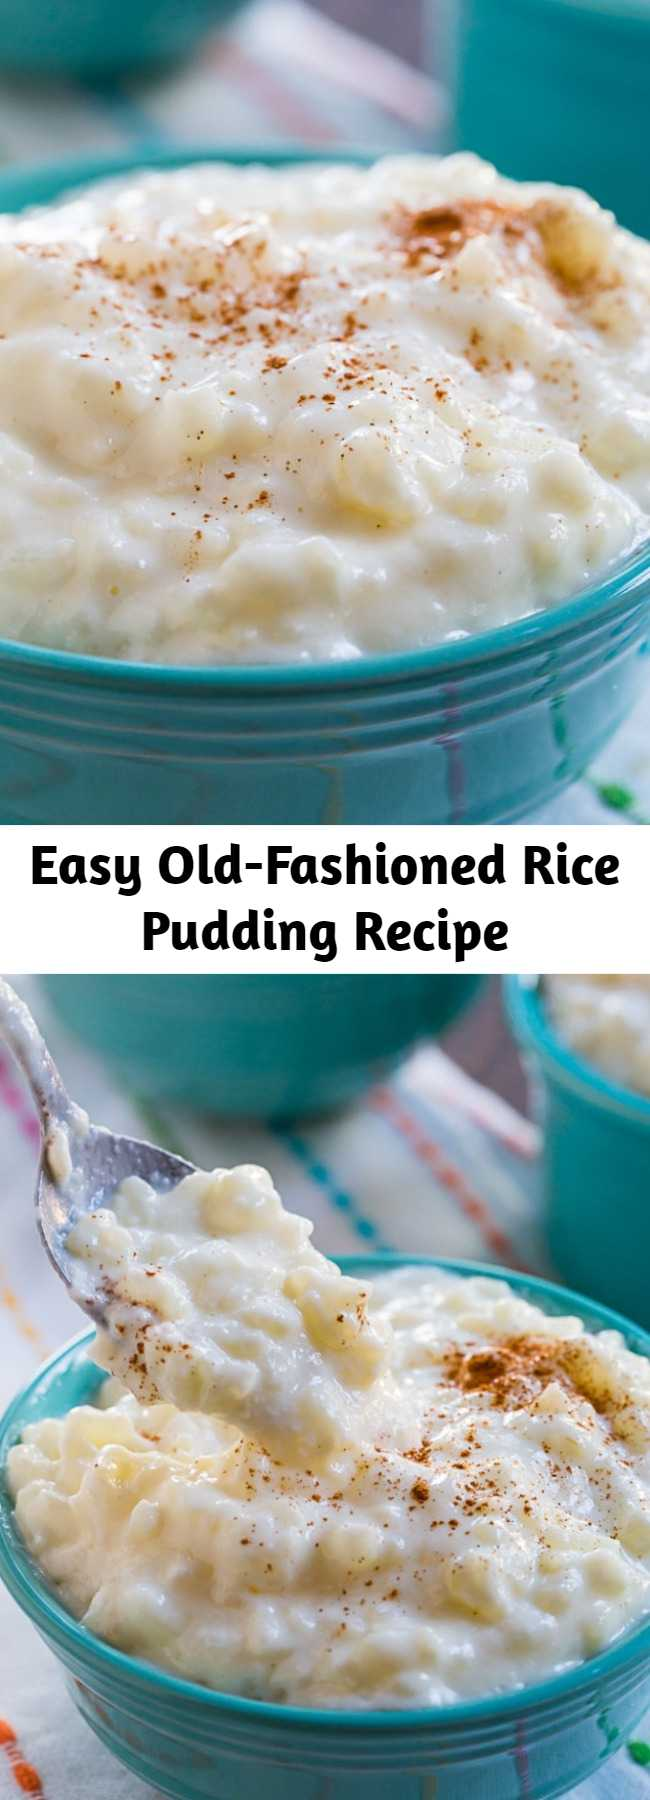 Easy Old-Fashioned Rice Pudding Recipe - Old-Fashioned Rice Pudding is so creamy with the perfect texture and sweetness. Only a handful of ingredients and a little patience are needed to make this old time favorite dessert.